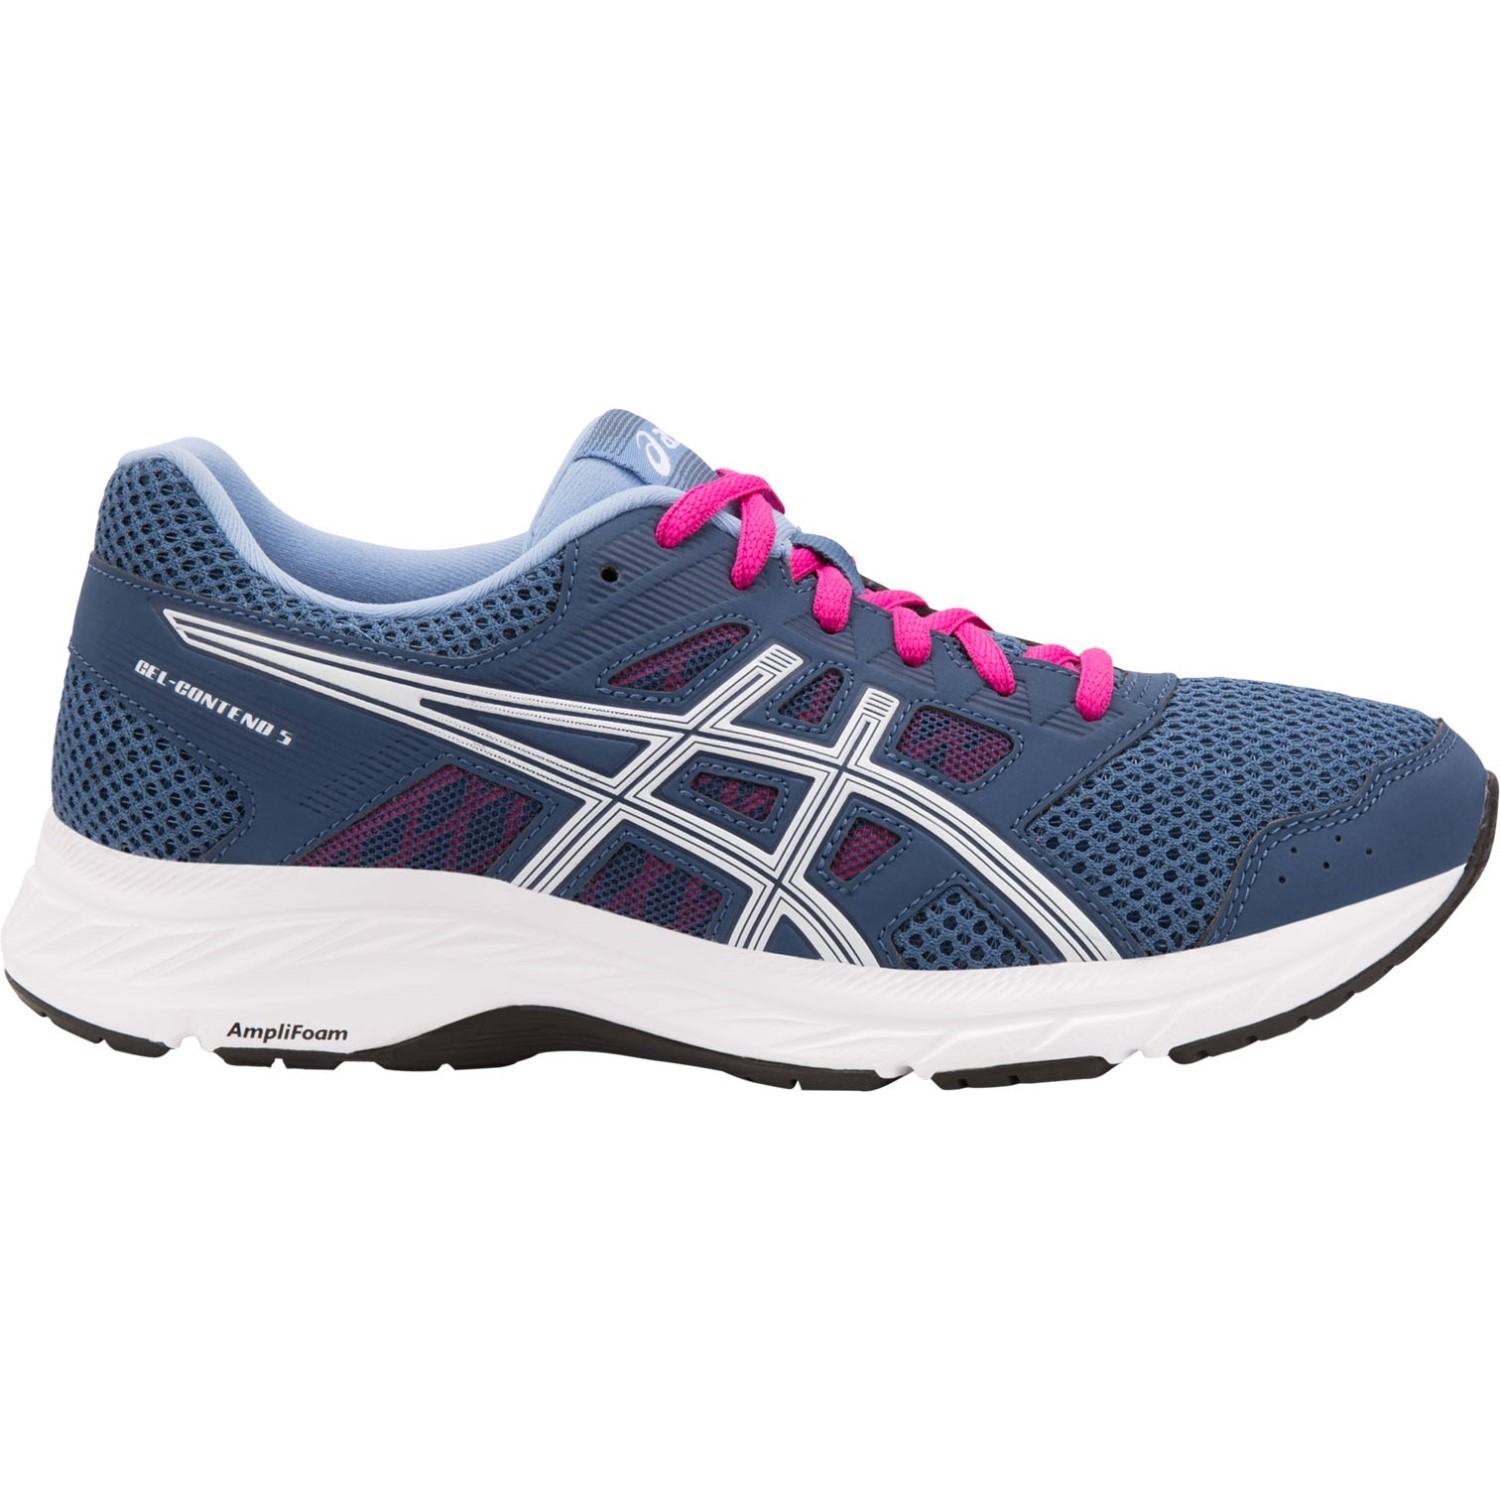 1a8983eb9df1d Asics Gel Contend 5 - Womens Running Shoes - Grand Shark White ...